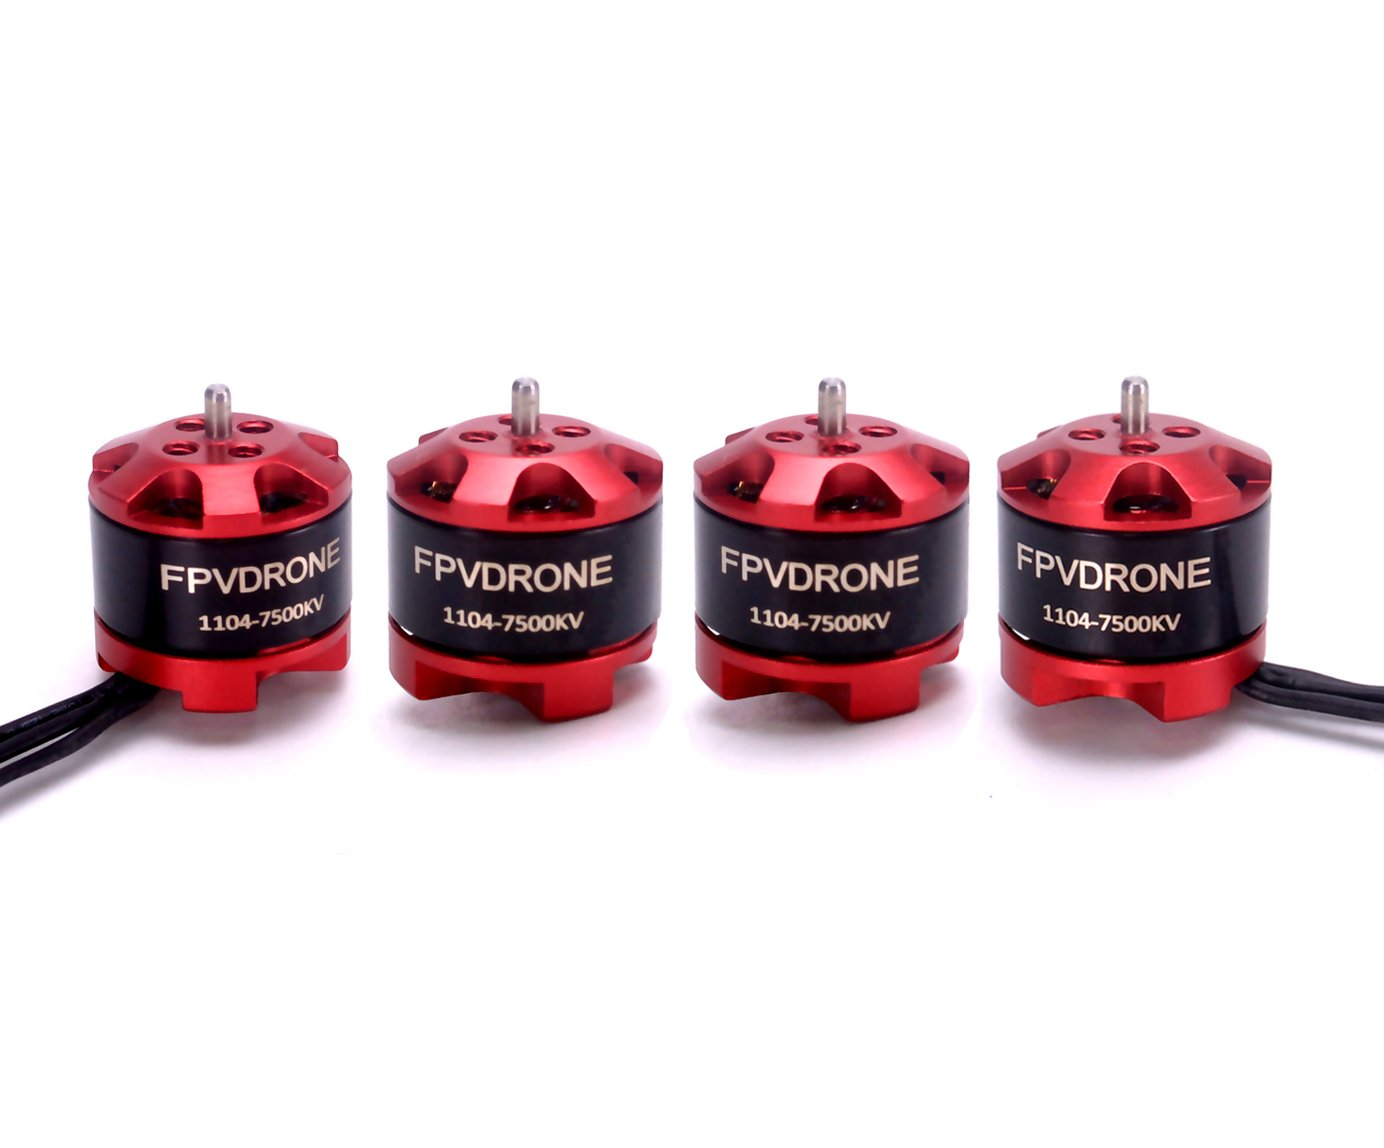 FPVDrone 1104 7500KV Brushless Motors for FPV Racing Drone Quadcopter 4pcs